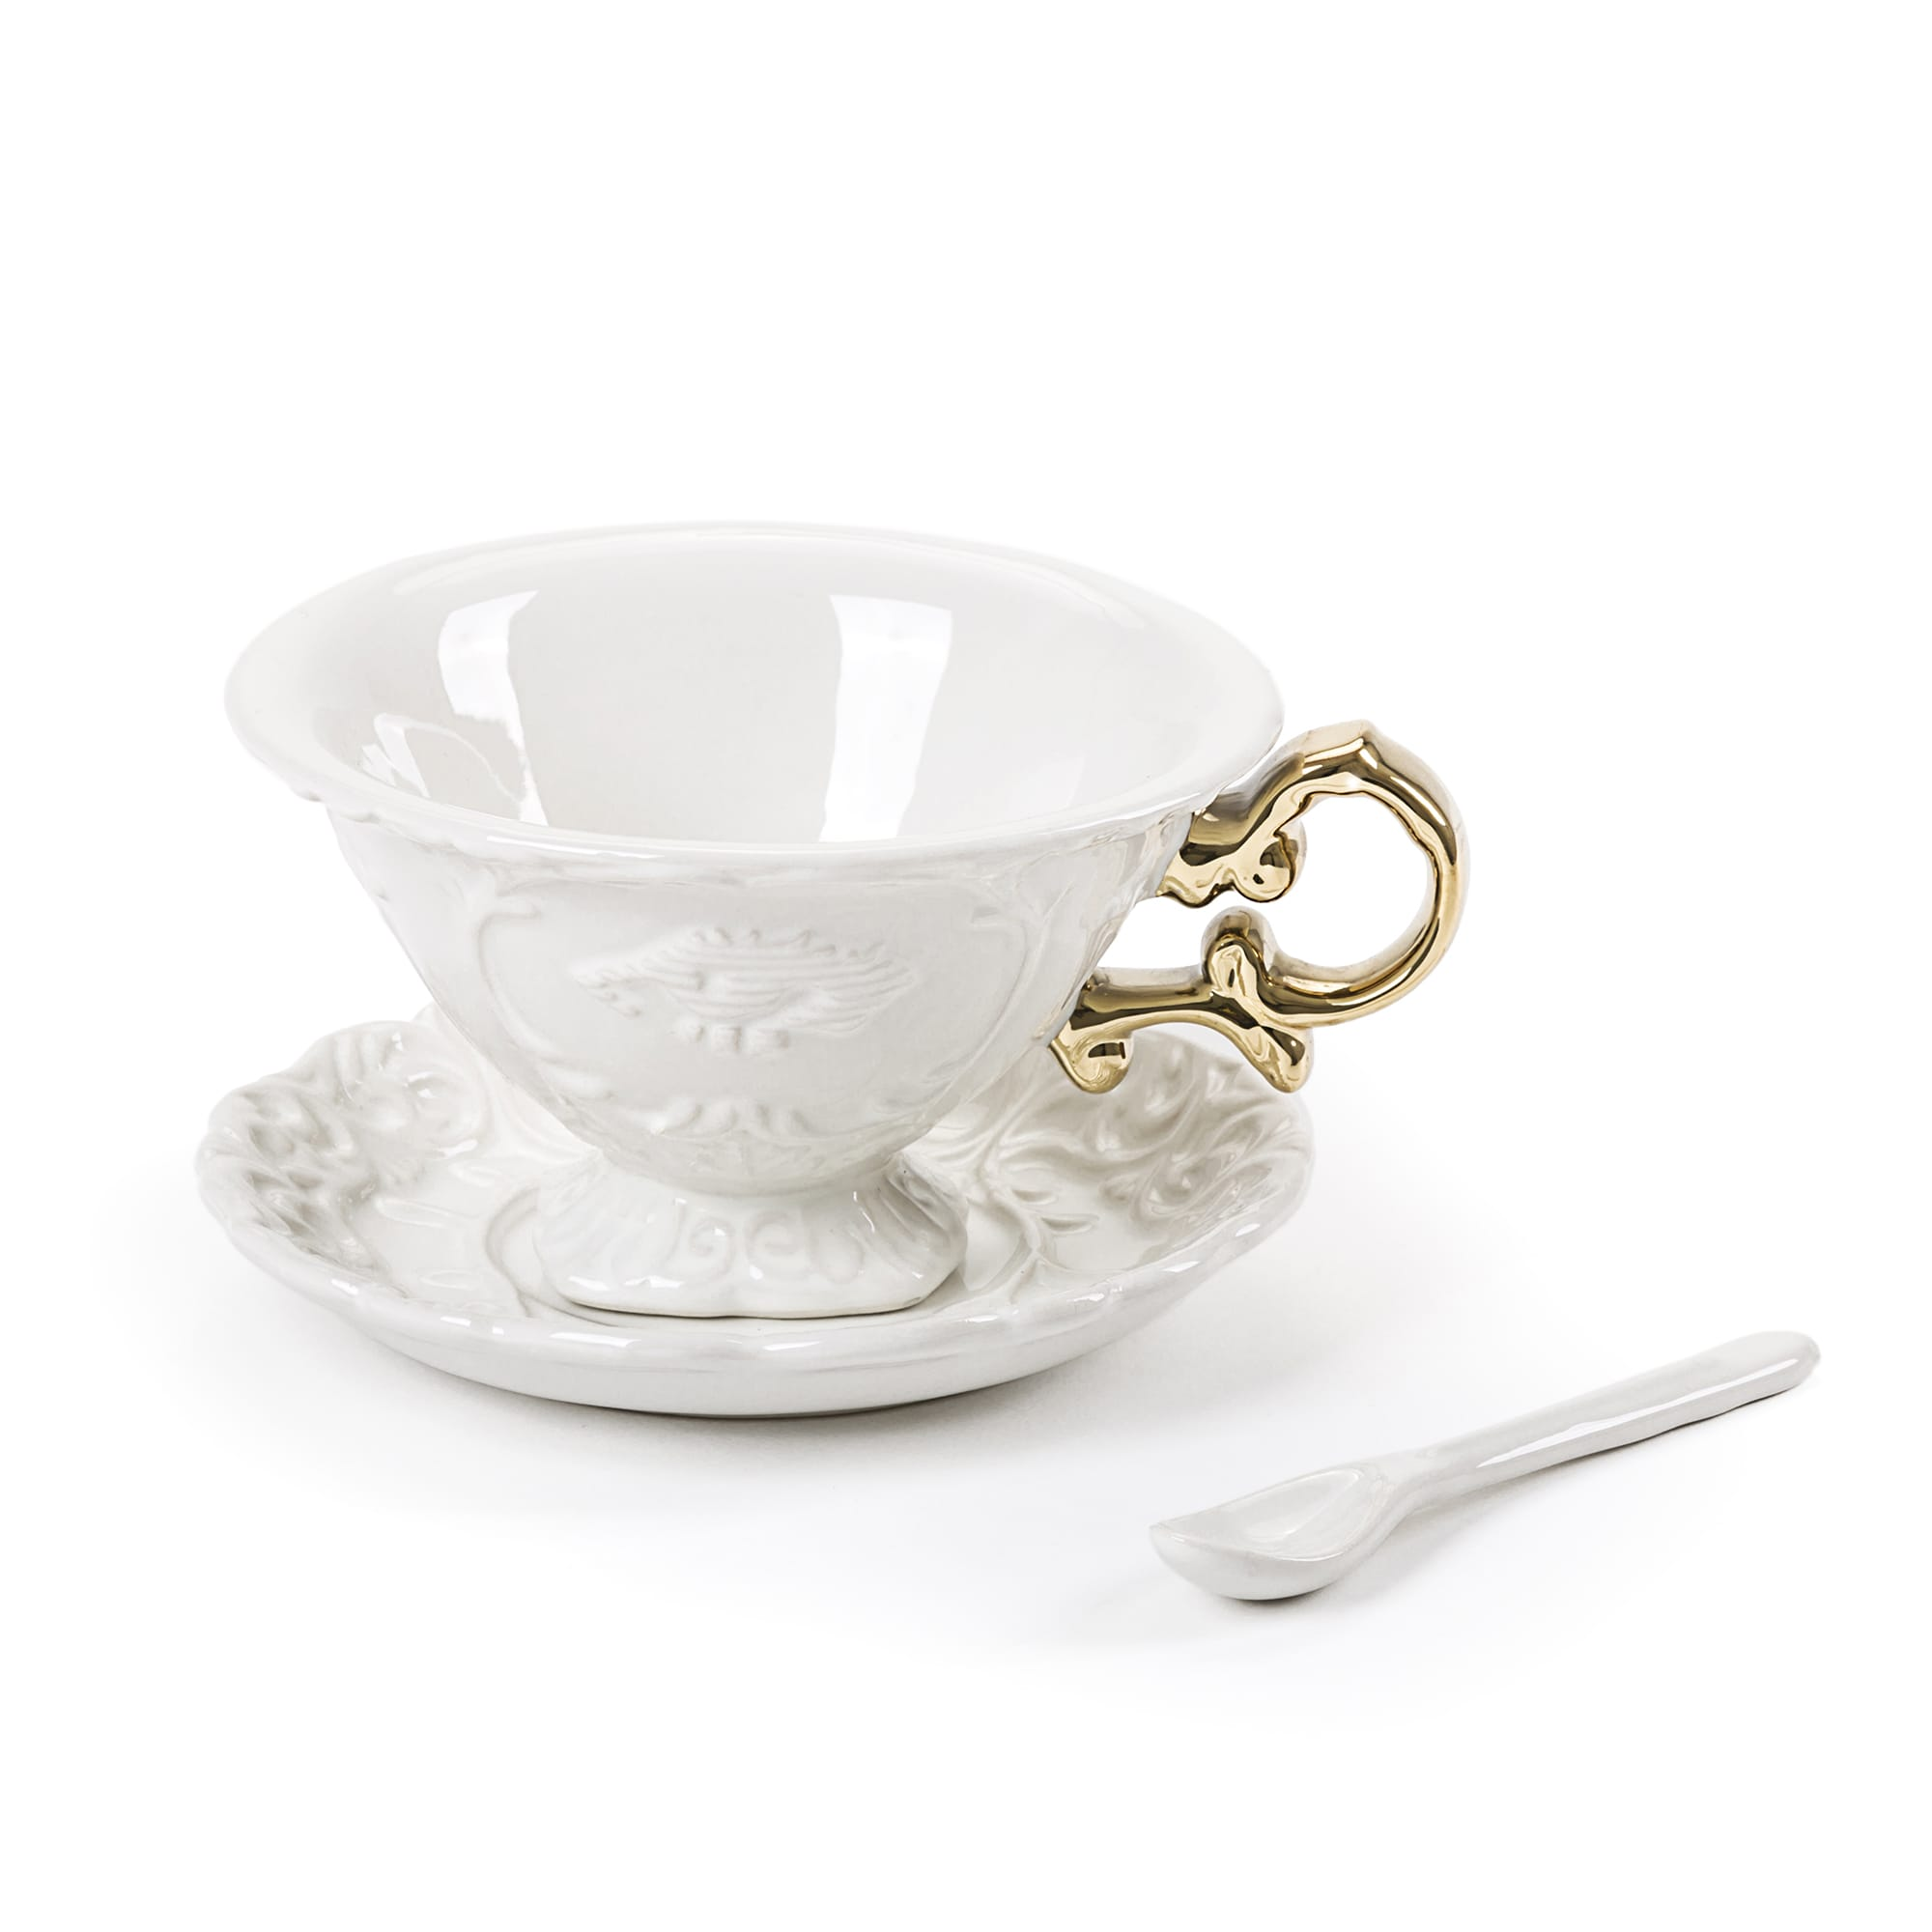 IWares Seletti Tea Set, Gold